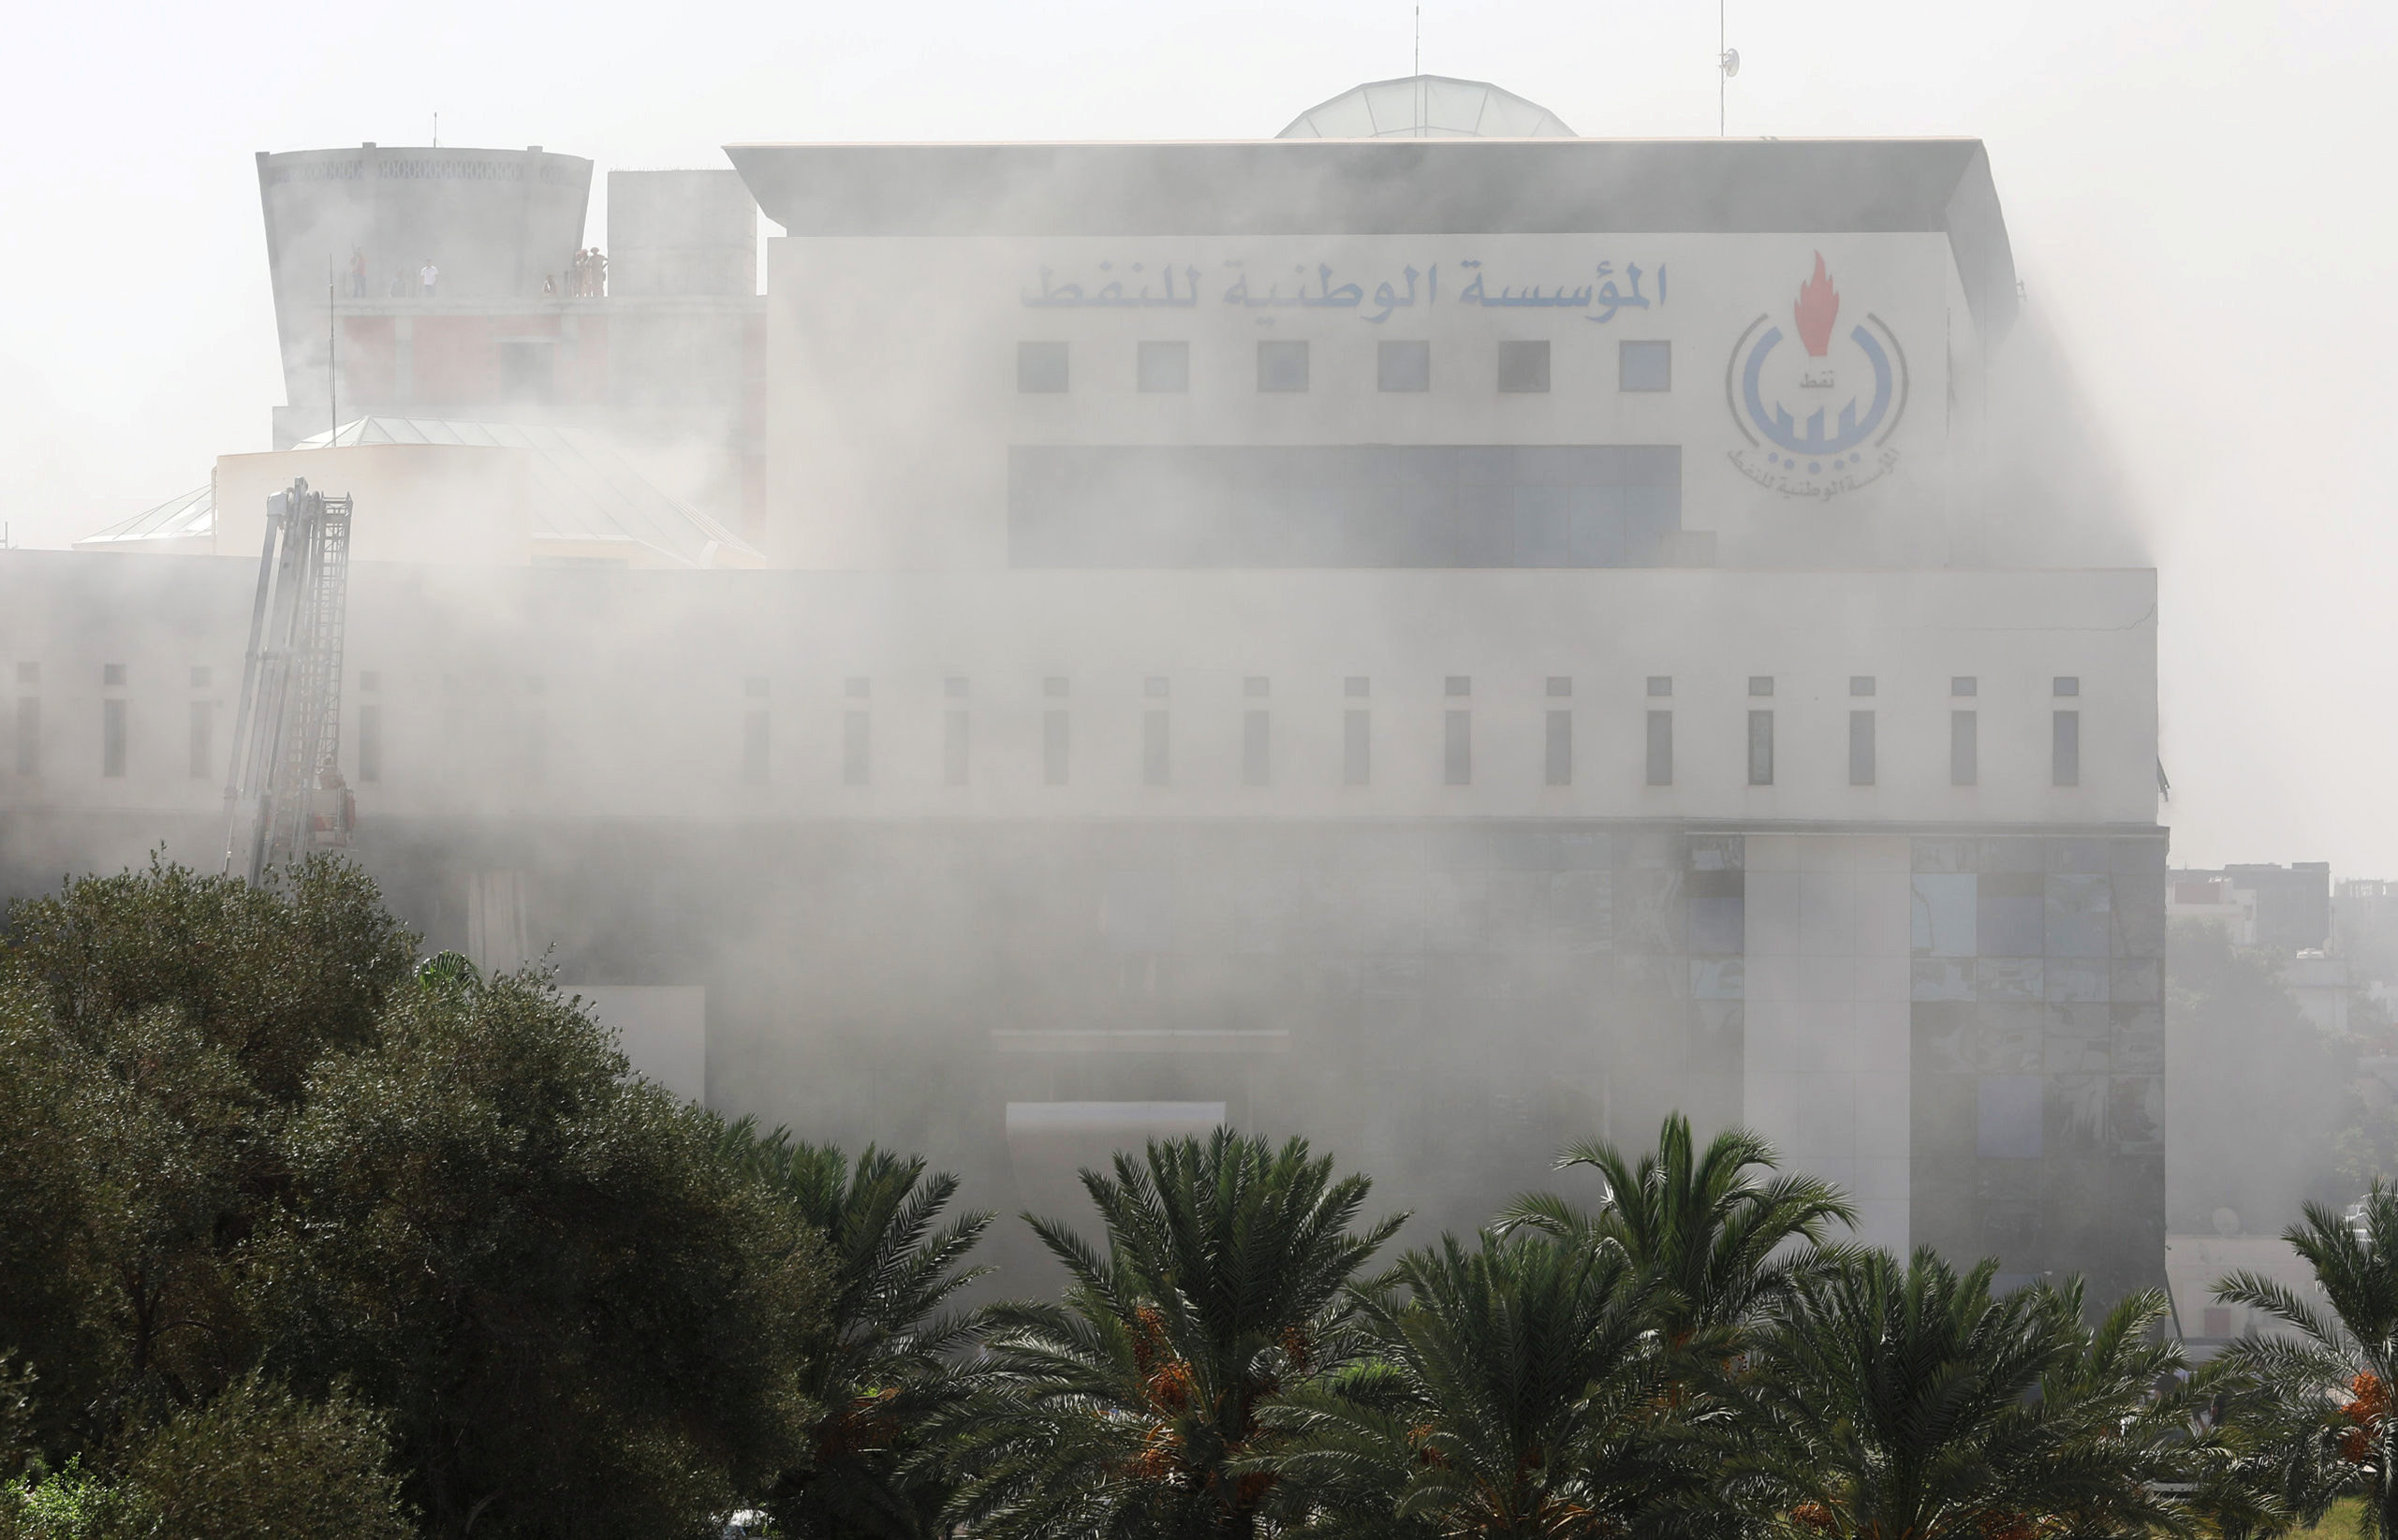 Smoke rises form the headquarters of Libyan state oil firm National Oil Corporation (NOC) after three masked persons attacked it in Tripoli, Libya September 10, 2018. REUTERS/Hani Amara